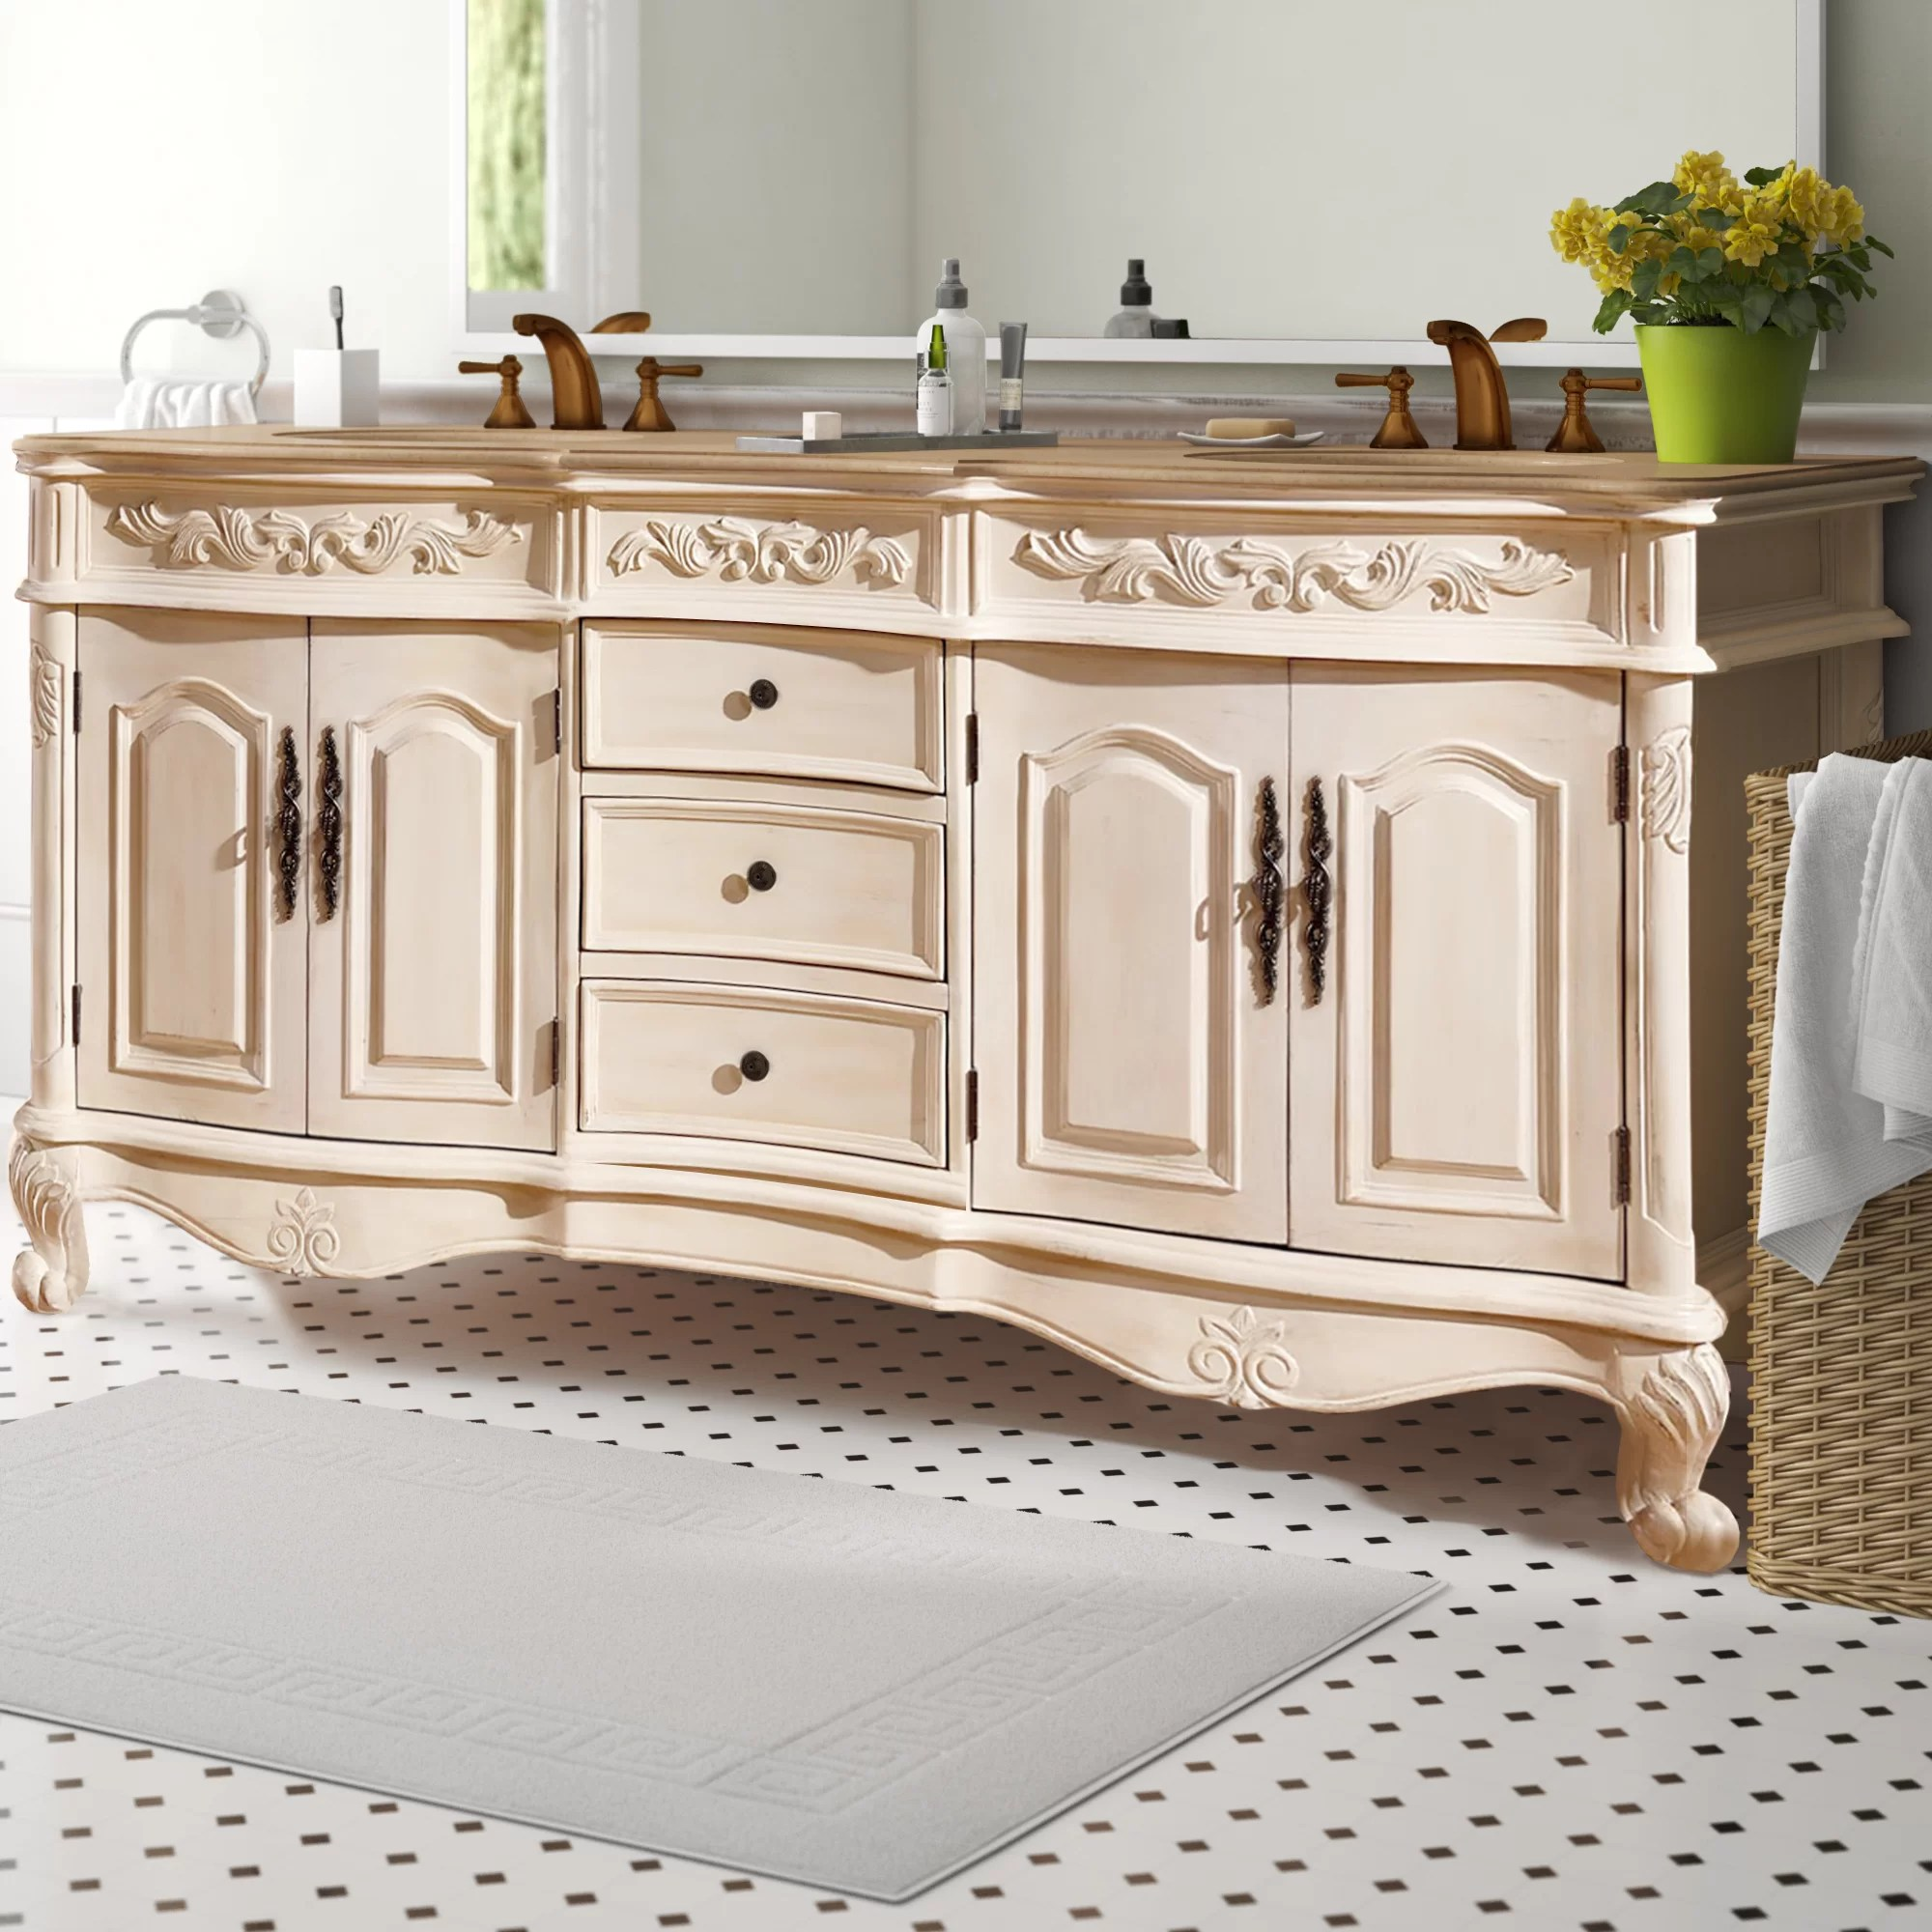 Bathroom Vanity 72 Double Sink Svetlana 72